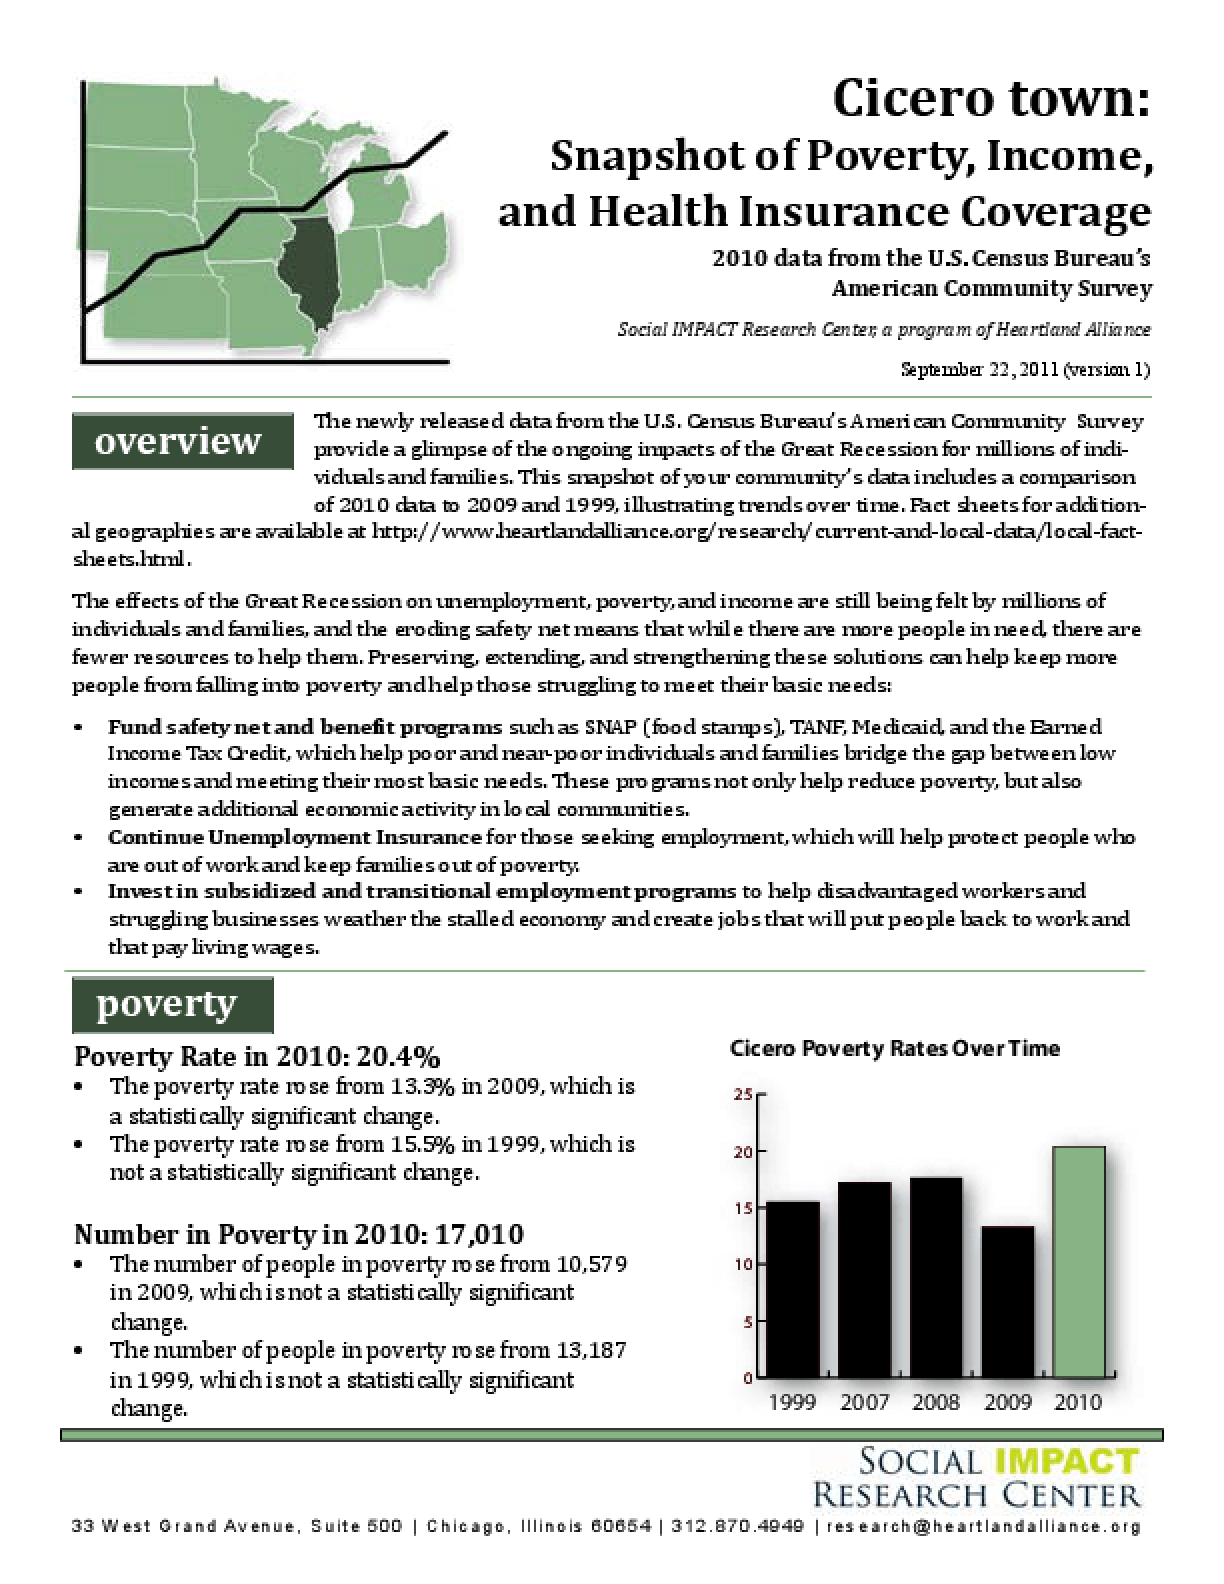 Cicero: Snapshot of Poverty, Income, and Health Insurance Coverage